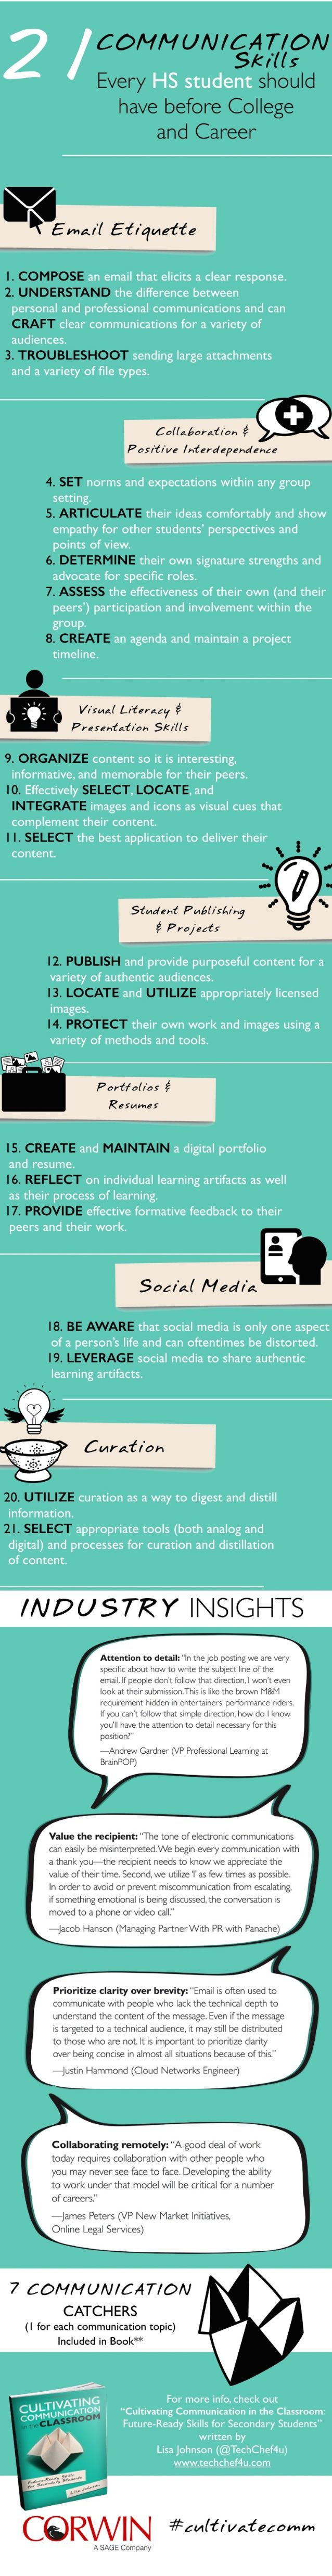 21 Communication Skills Every HS student should